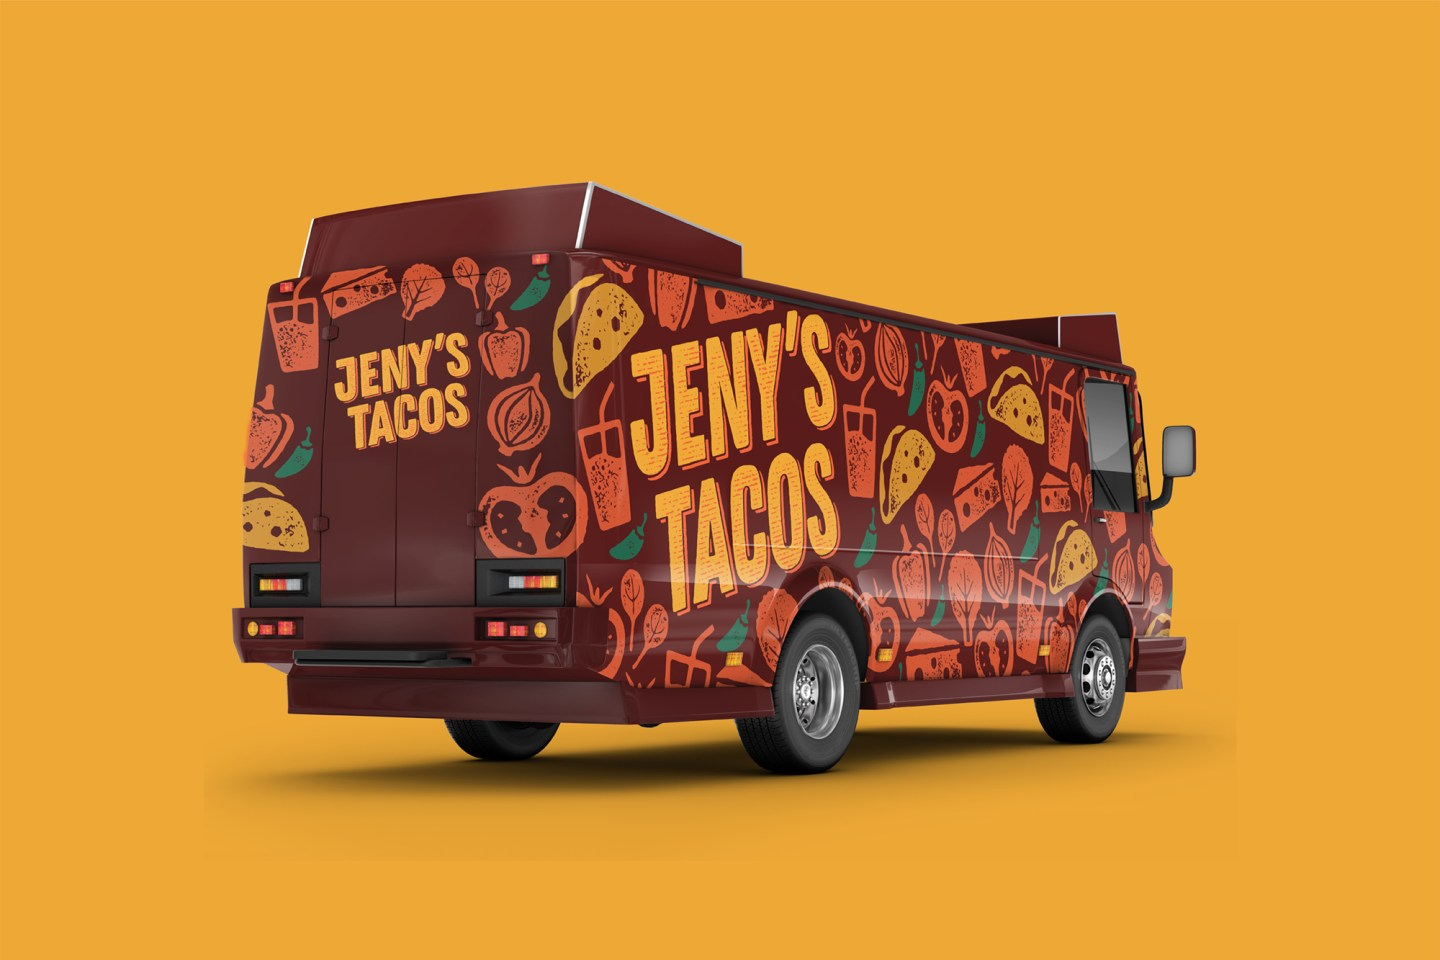 The Jeny's Tacos Food truck right side and rear design